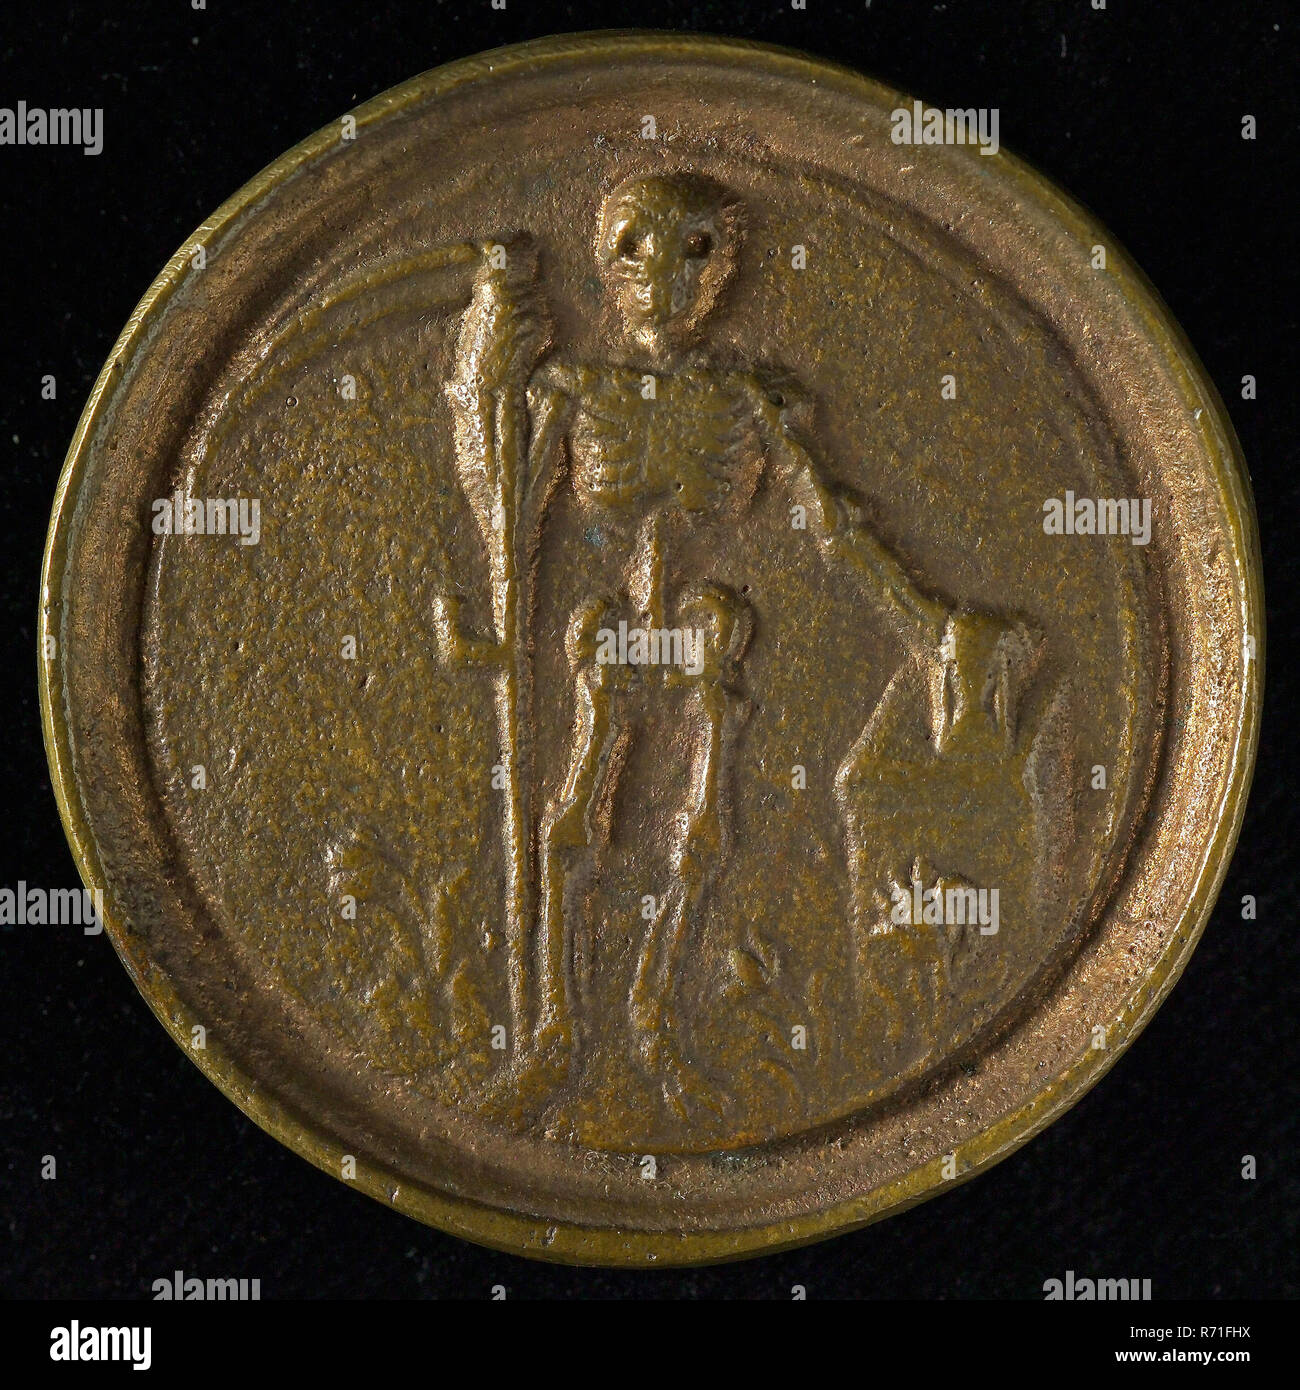 Entrance fee from the Hortus Medicus in Amsterdam, penning footage copper, standing skeleton scythe in the right hand the left rests on hourglass standing on pedestal; on the ground flowers, no W. van Rede death Collection W van Rede Rotterdam. - Stock Image